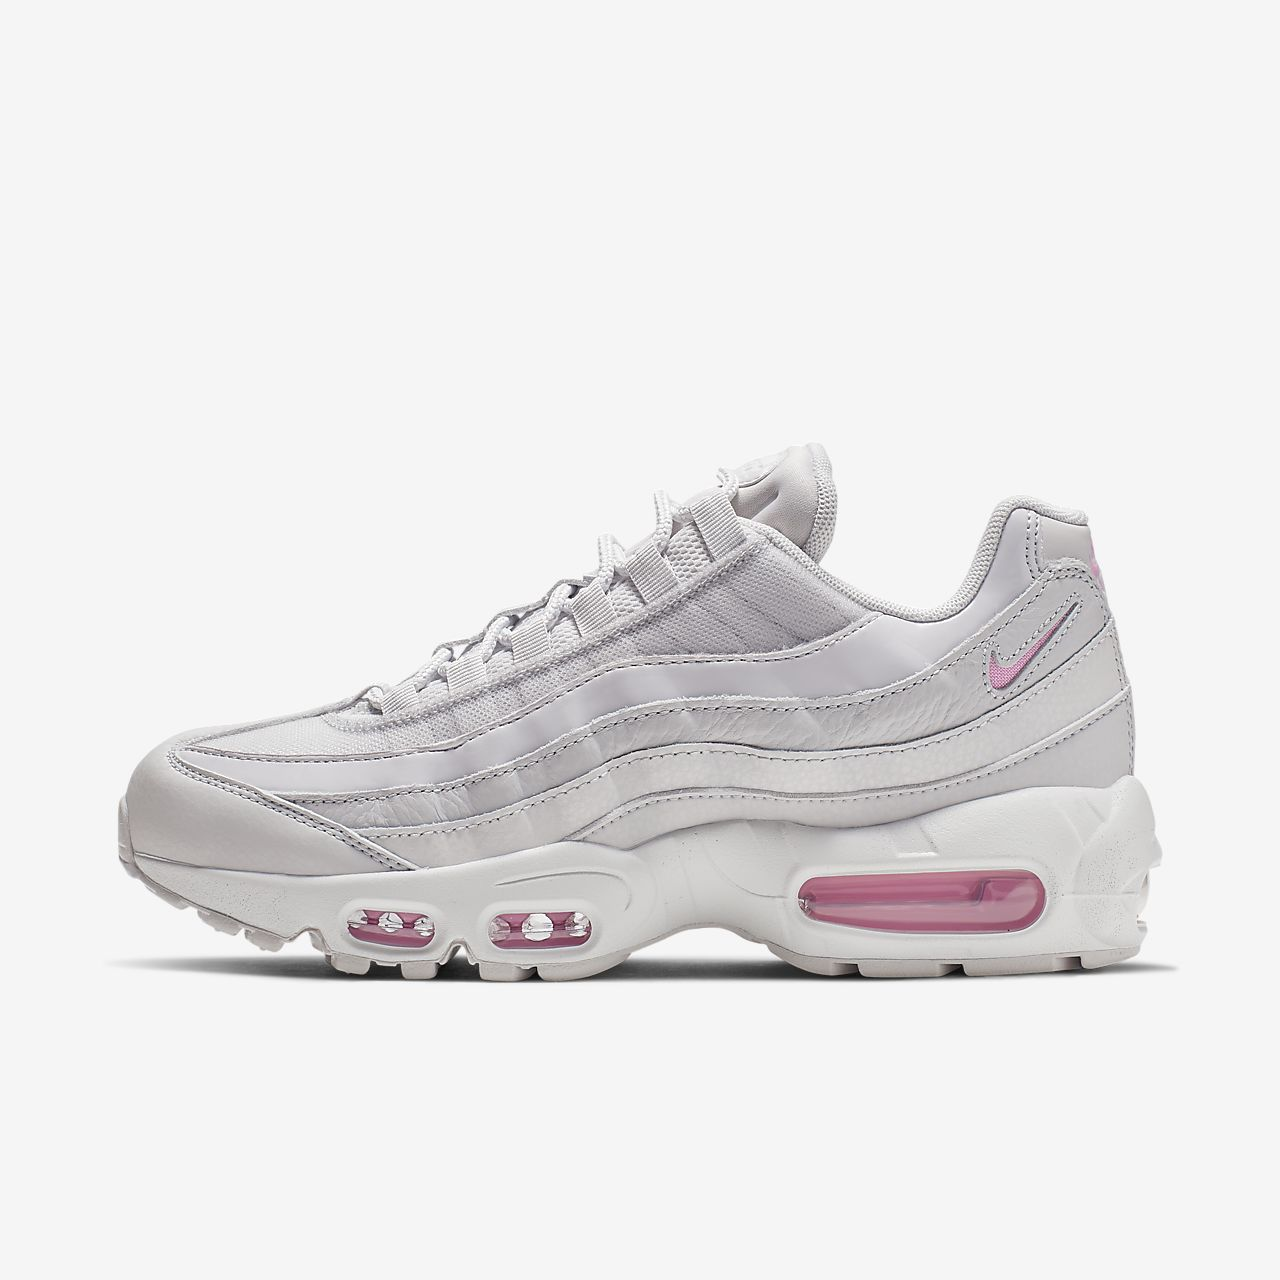 new style 51404 c4d88 ... Nike Air Max 95 SE Women s Shoe